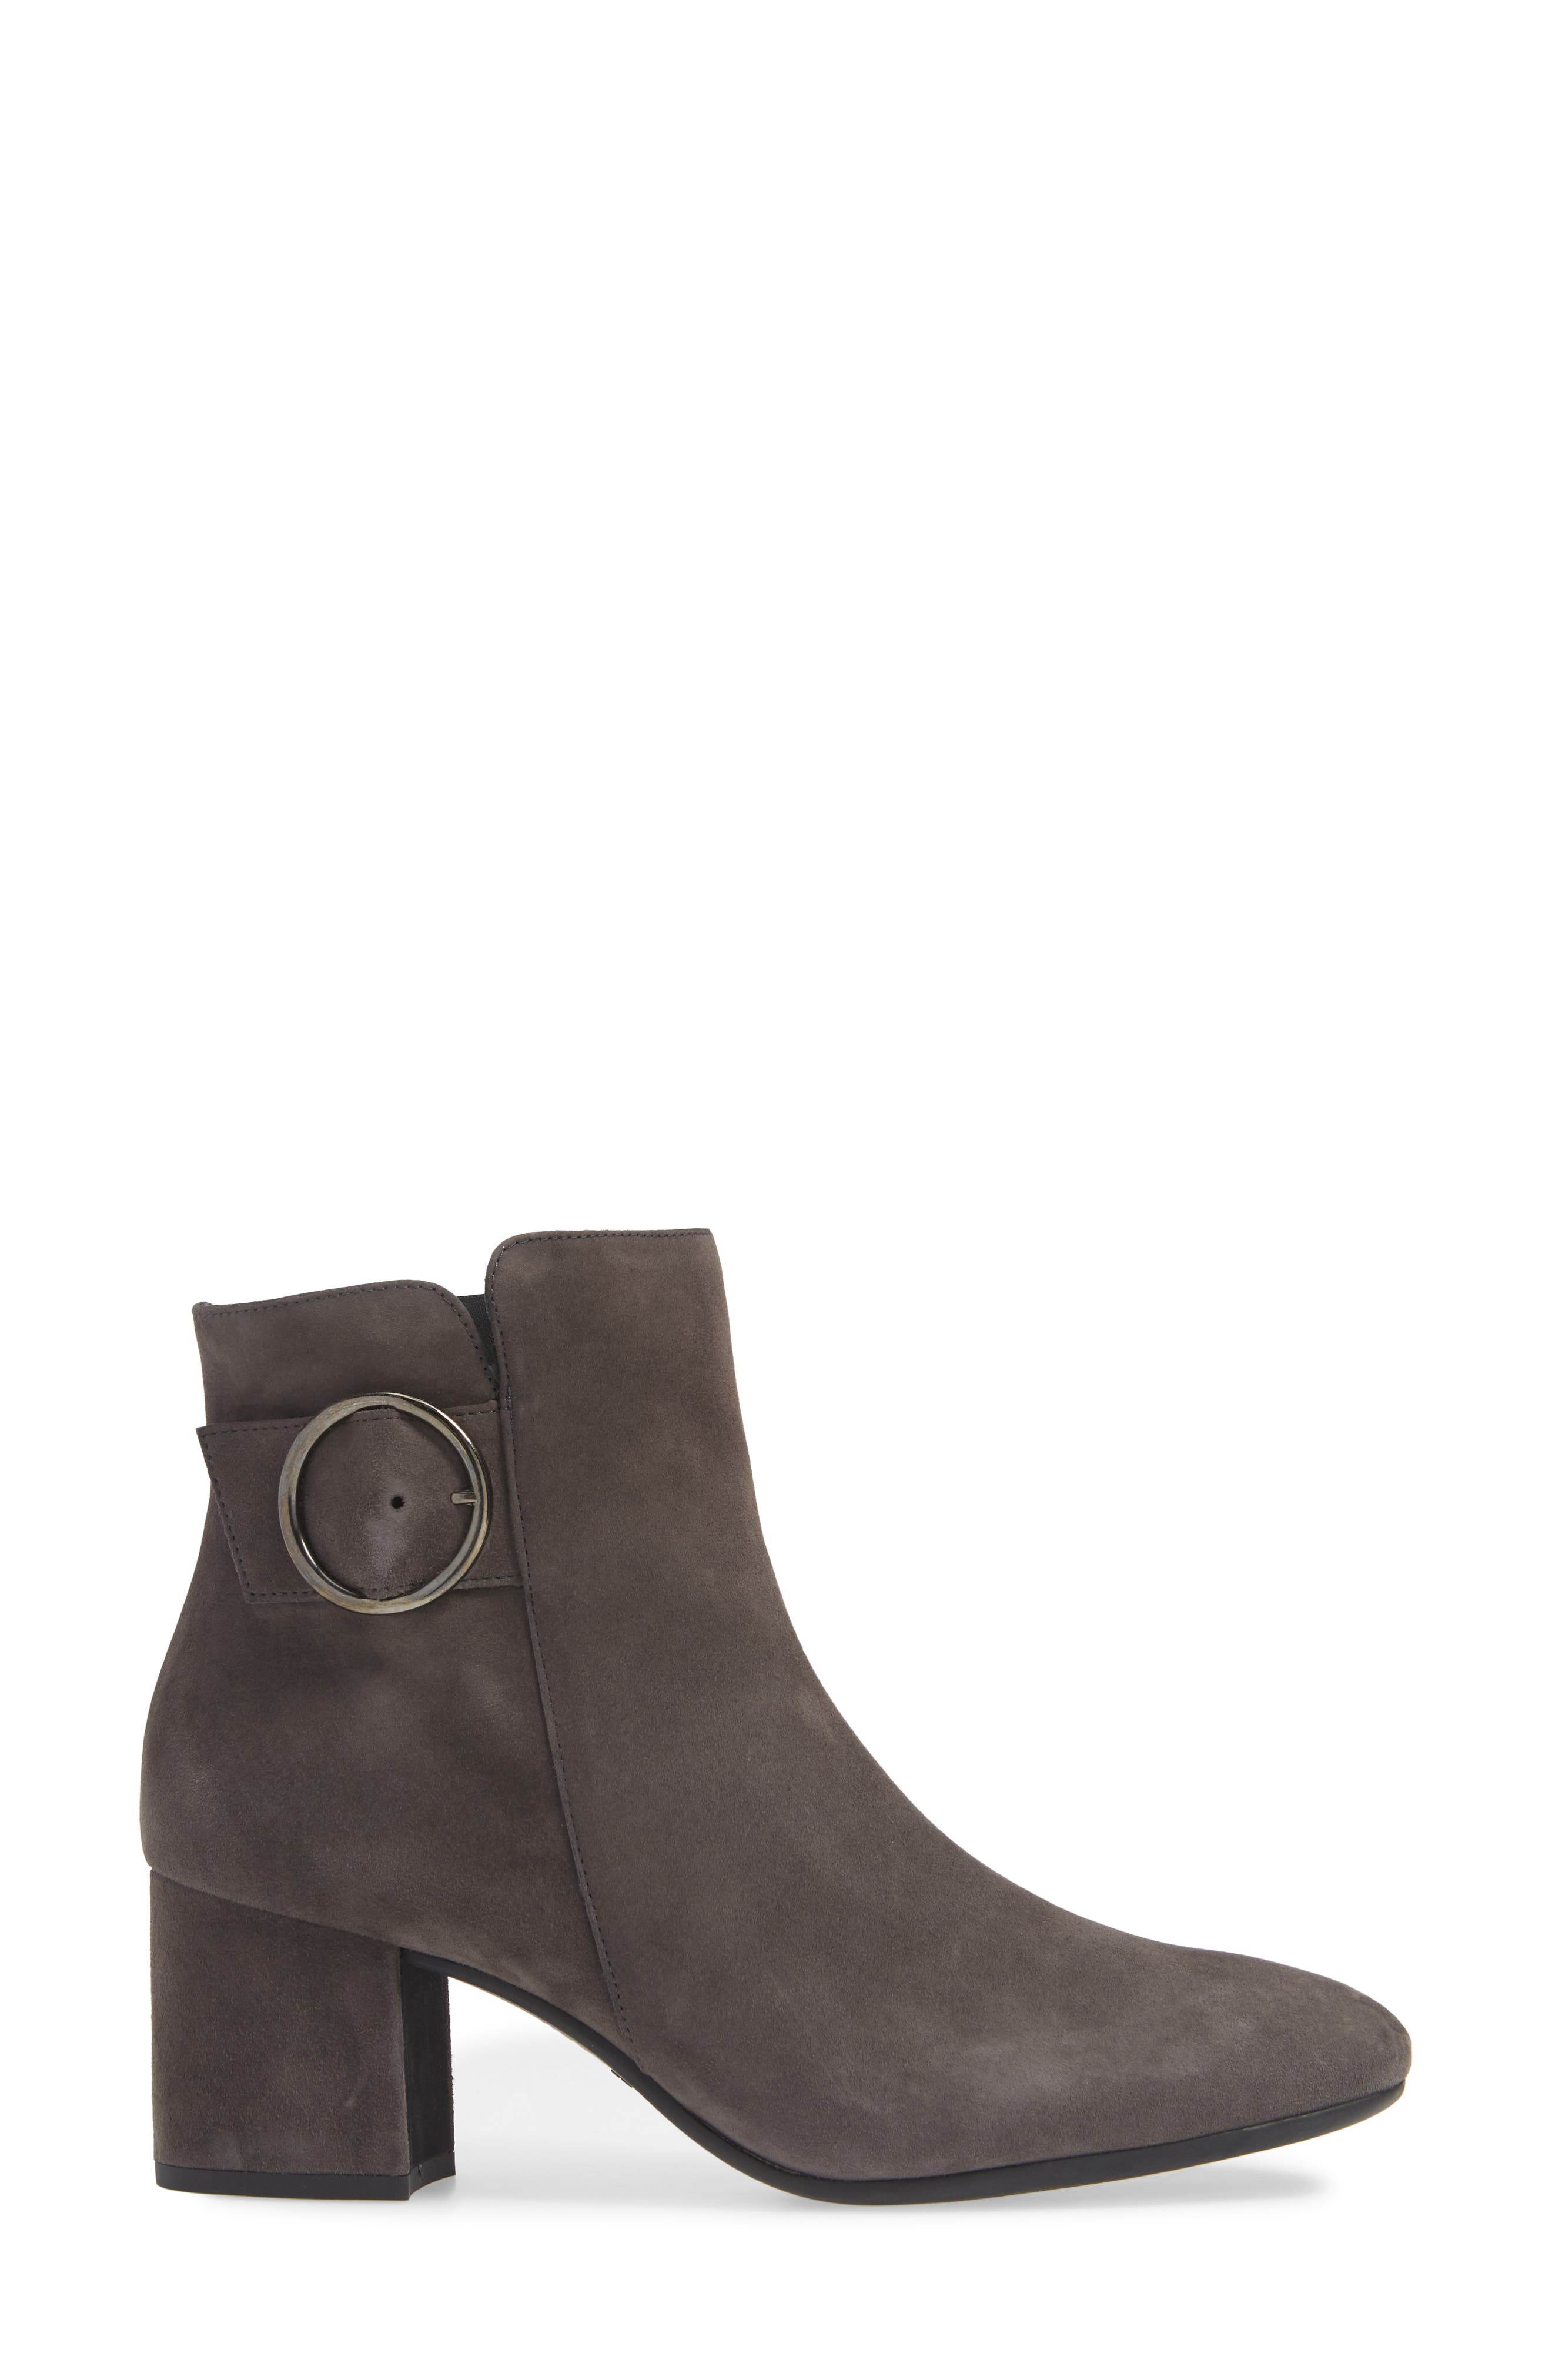 Taylor Bootie,                             Alternate thumbnail 3, color,                             IRON SUEDE